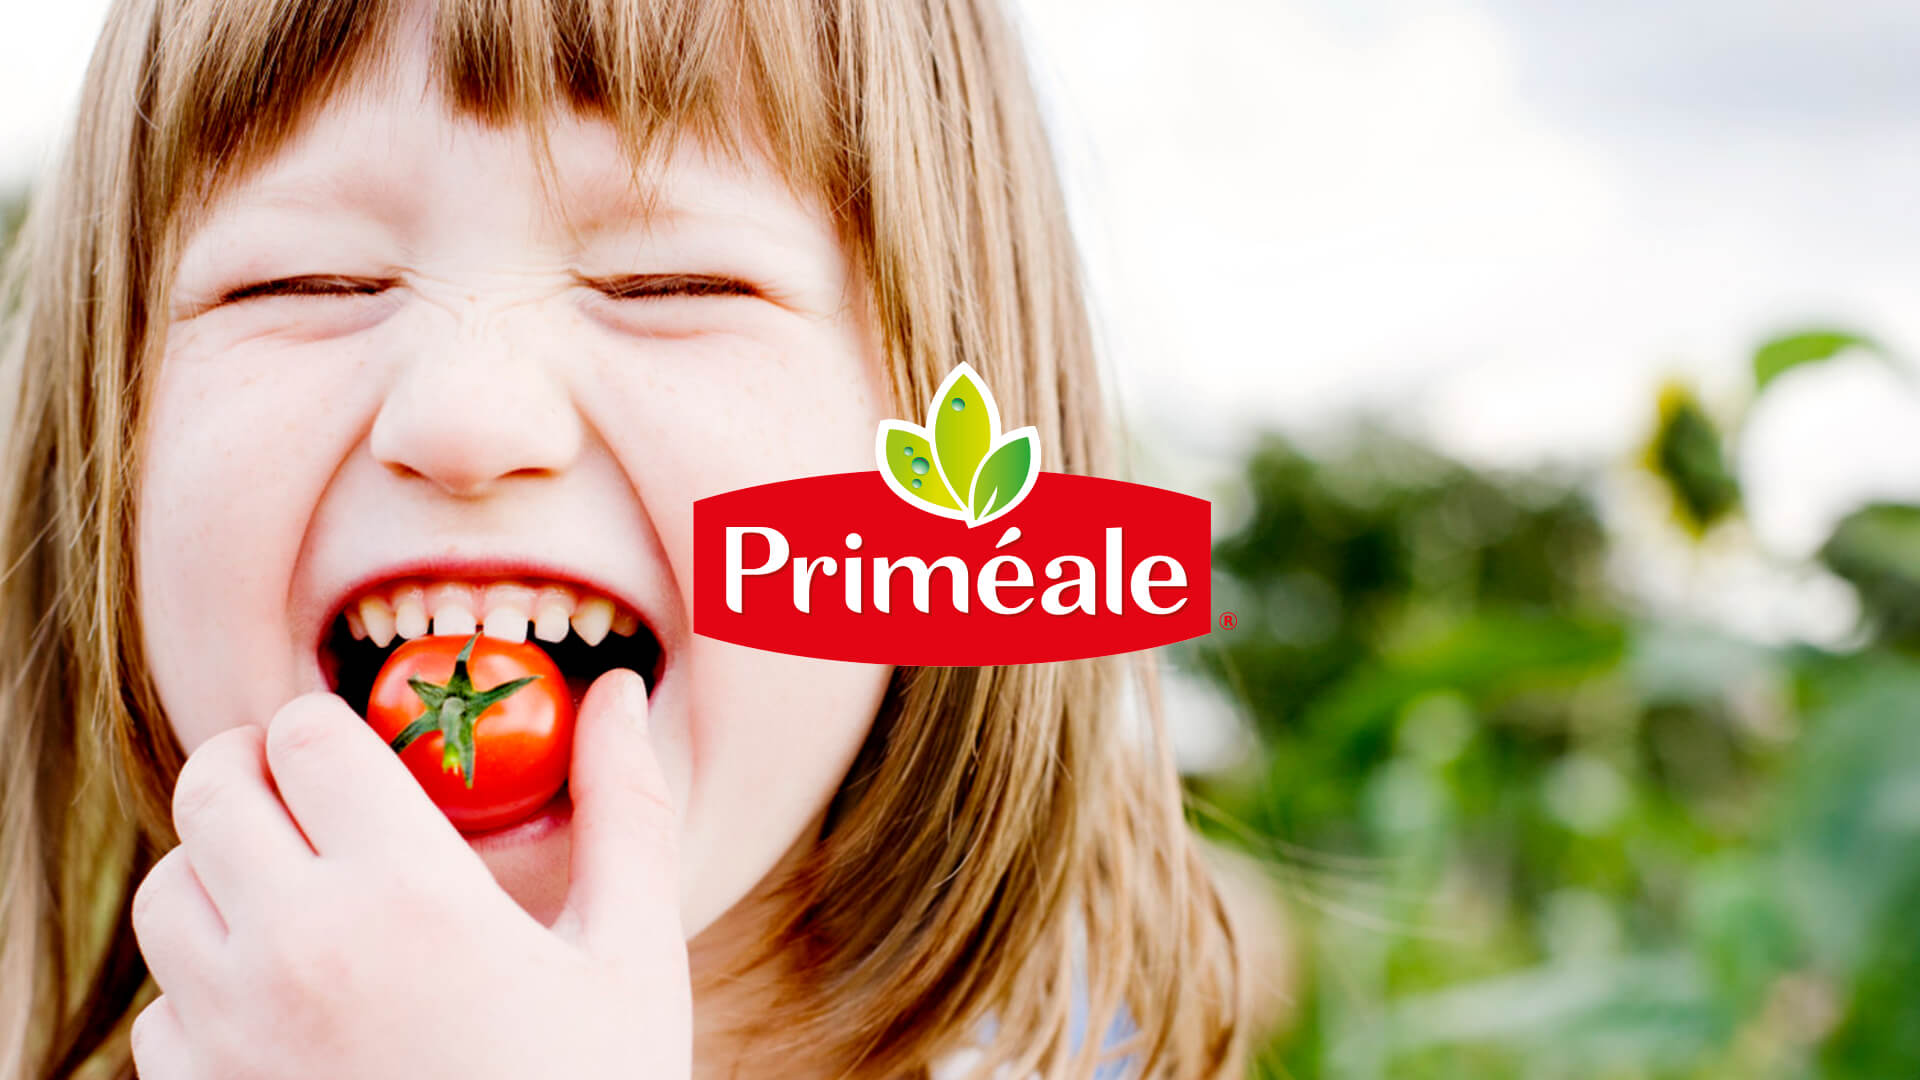 Image of Primeale website development